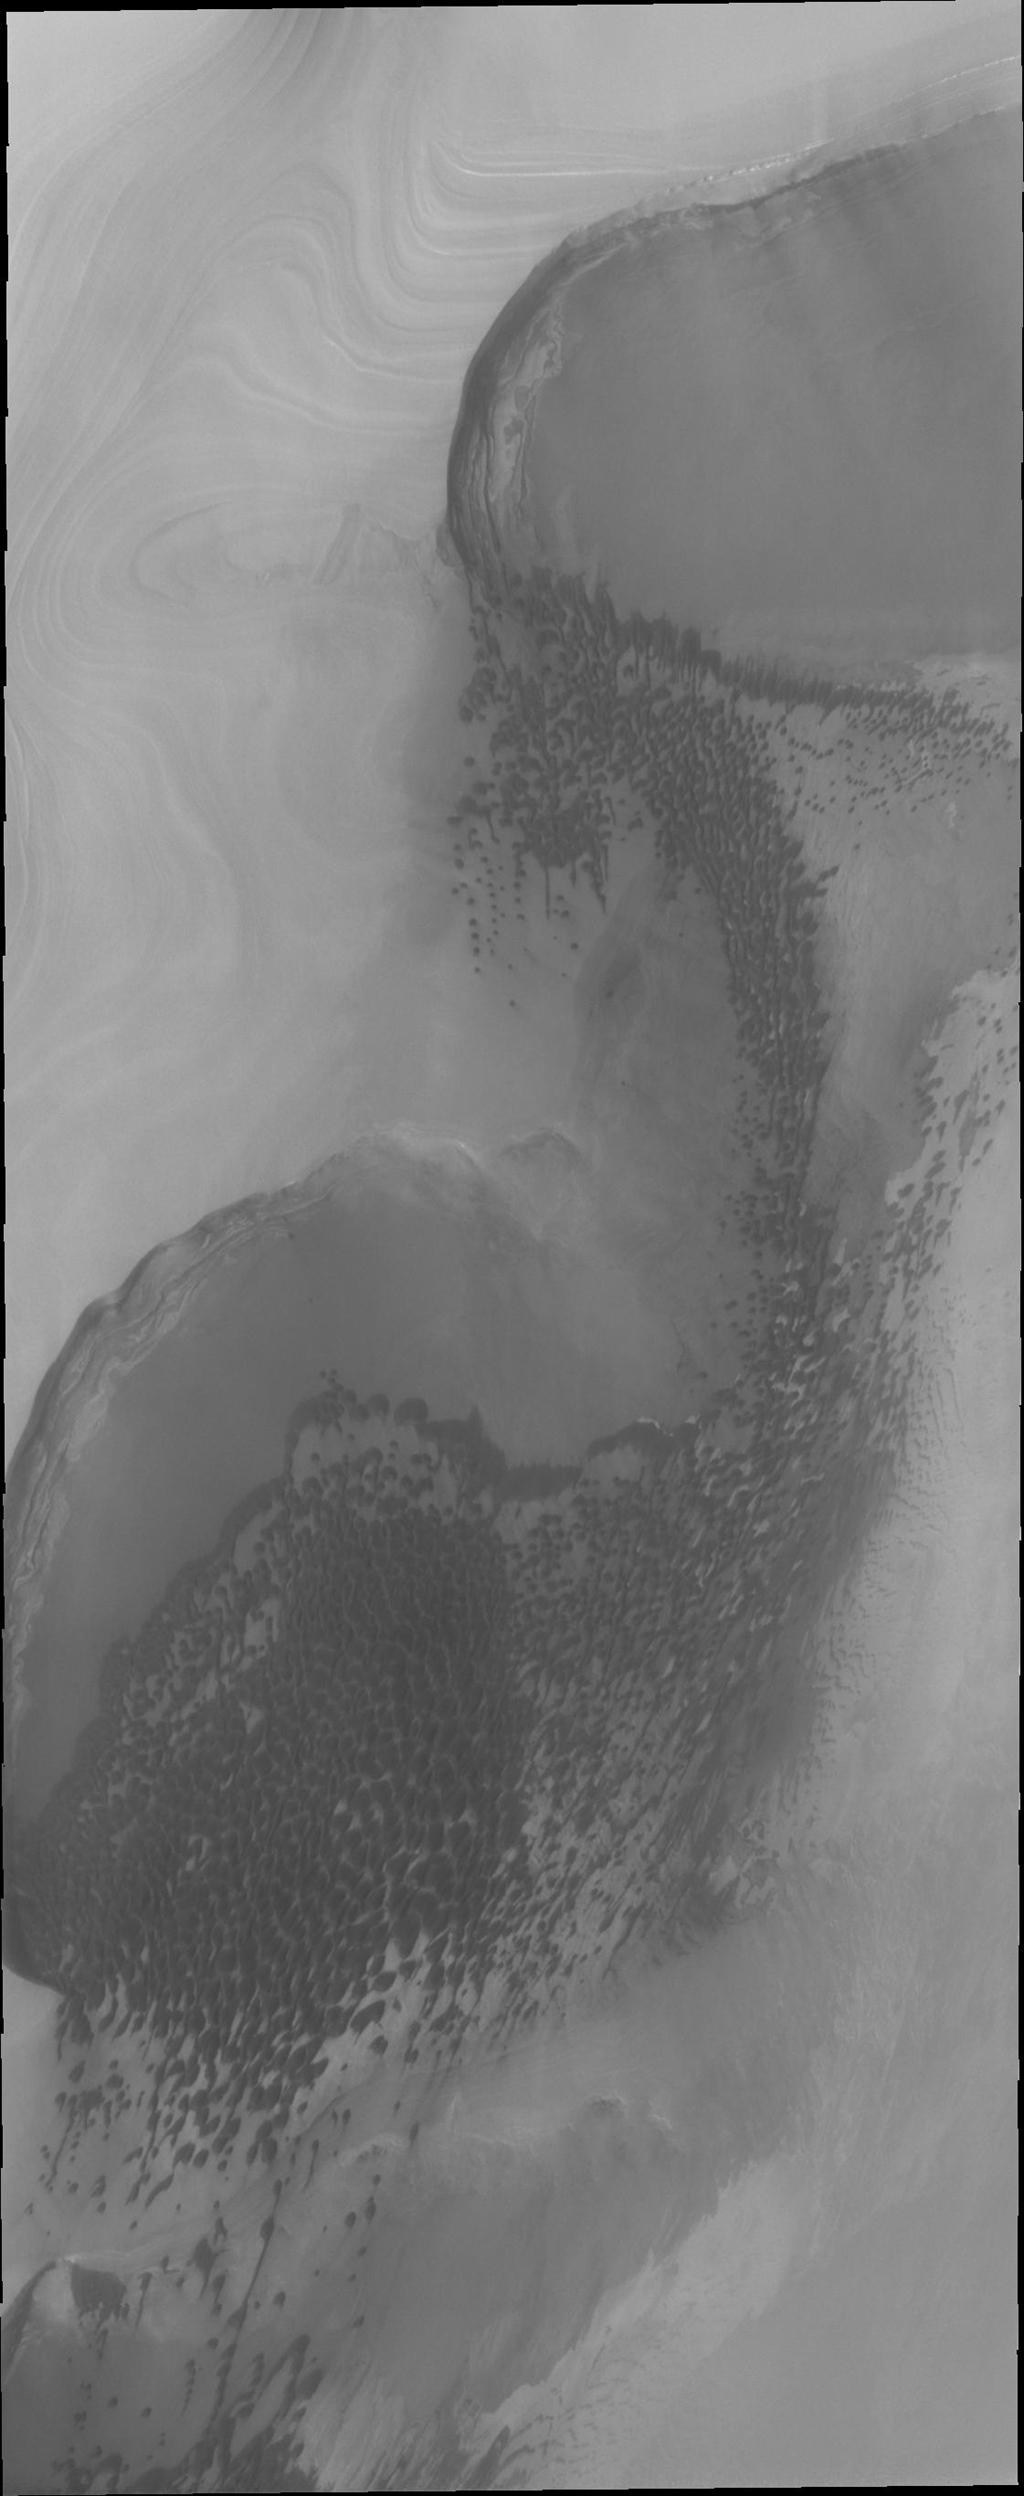 Sand dunes form large fields, called ergs, around the north polar cap of Mars. This image taken by NASA's Mars Odyssey shows are region of dunes at the cap margin.